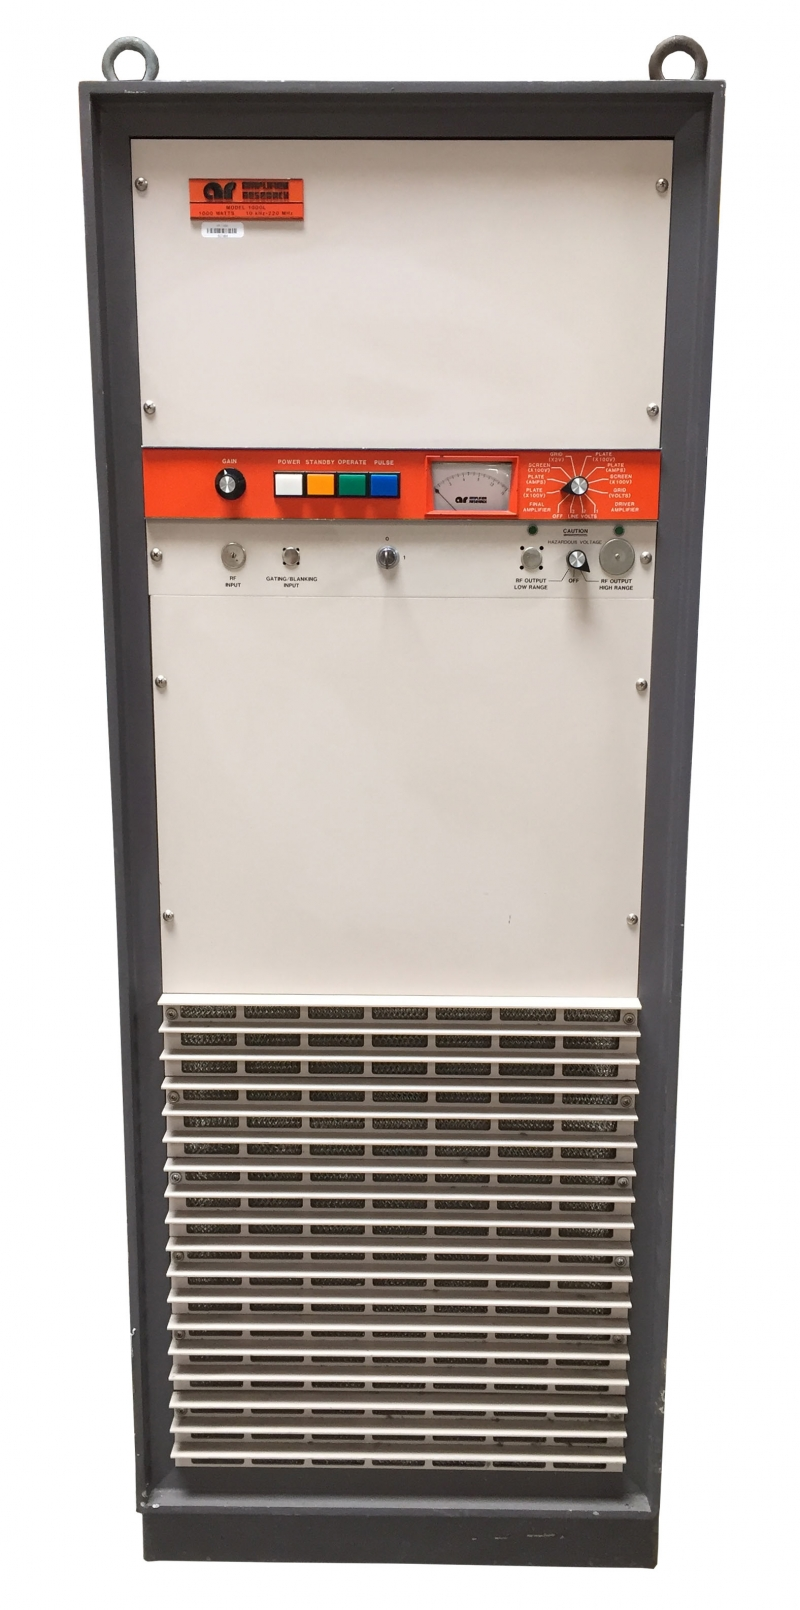 Image of IFI-Instruments-For-Industry-1000L by Axiom Test Equipment